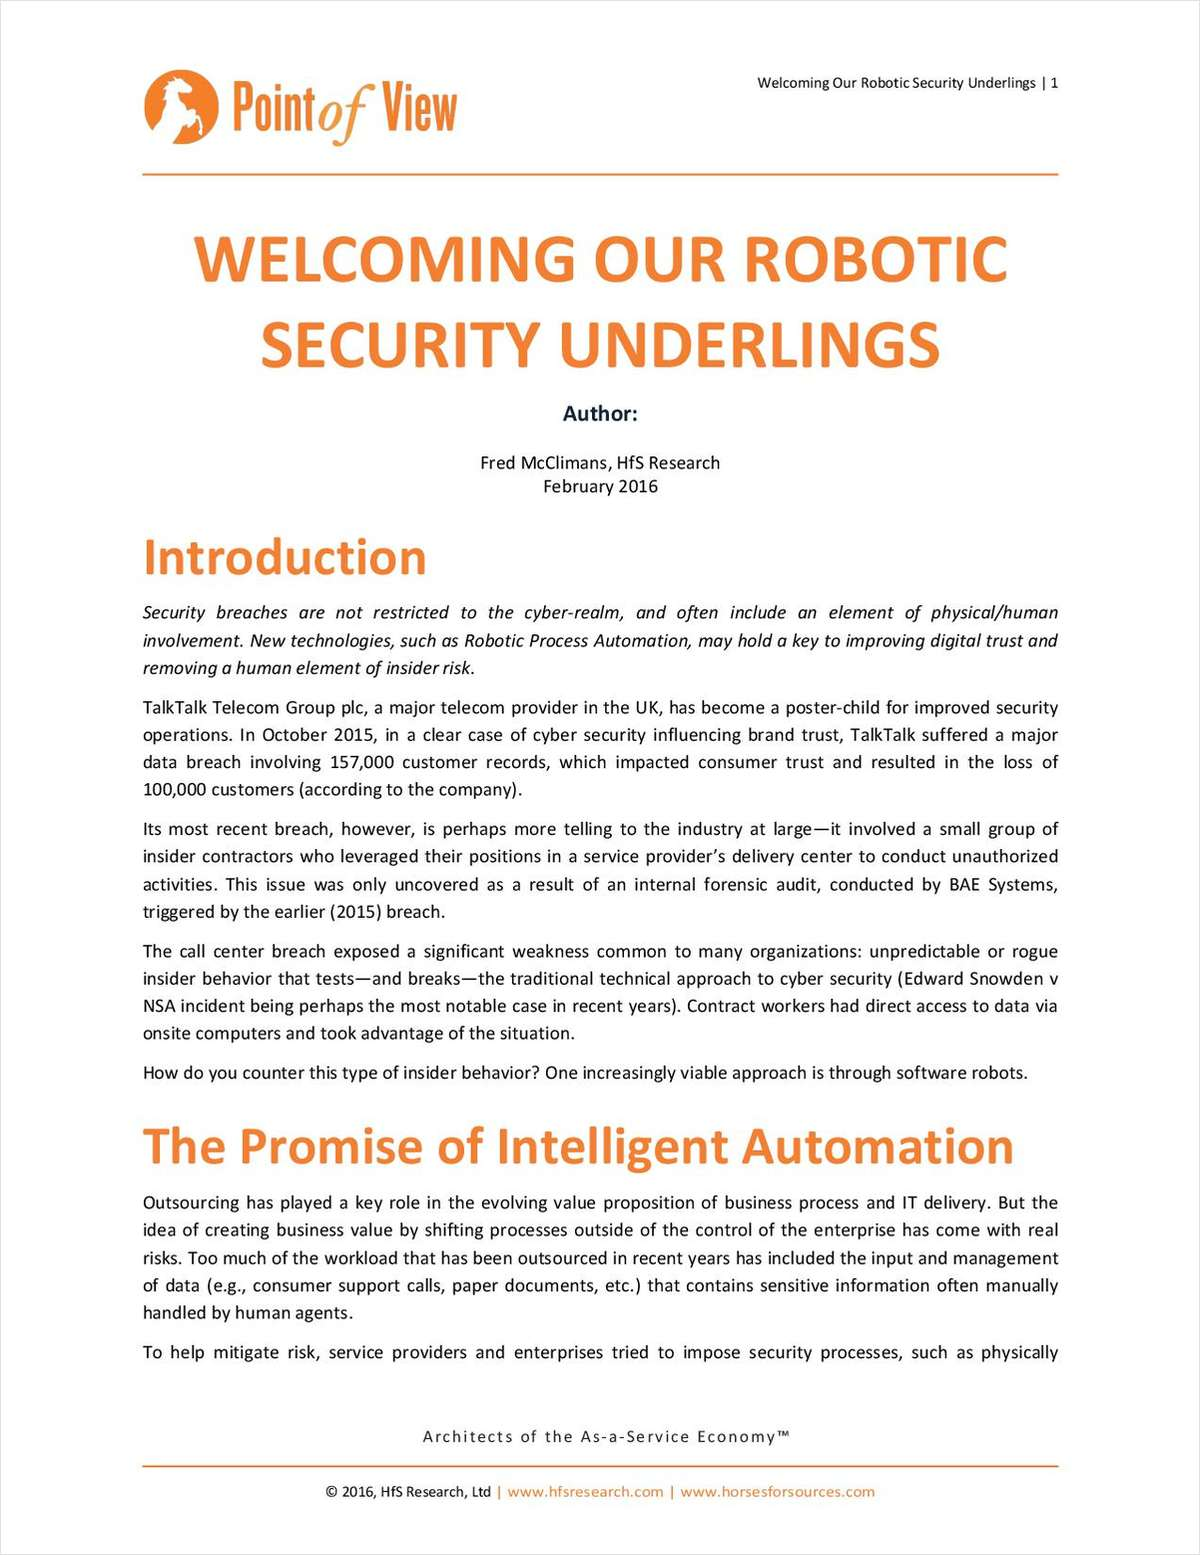 HfS Research Point of View: Welcoming our Robotic Security Underlings